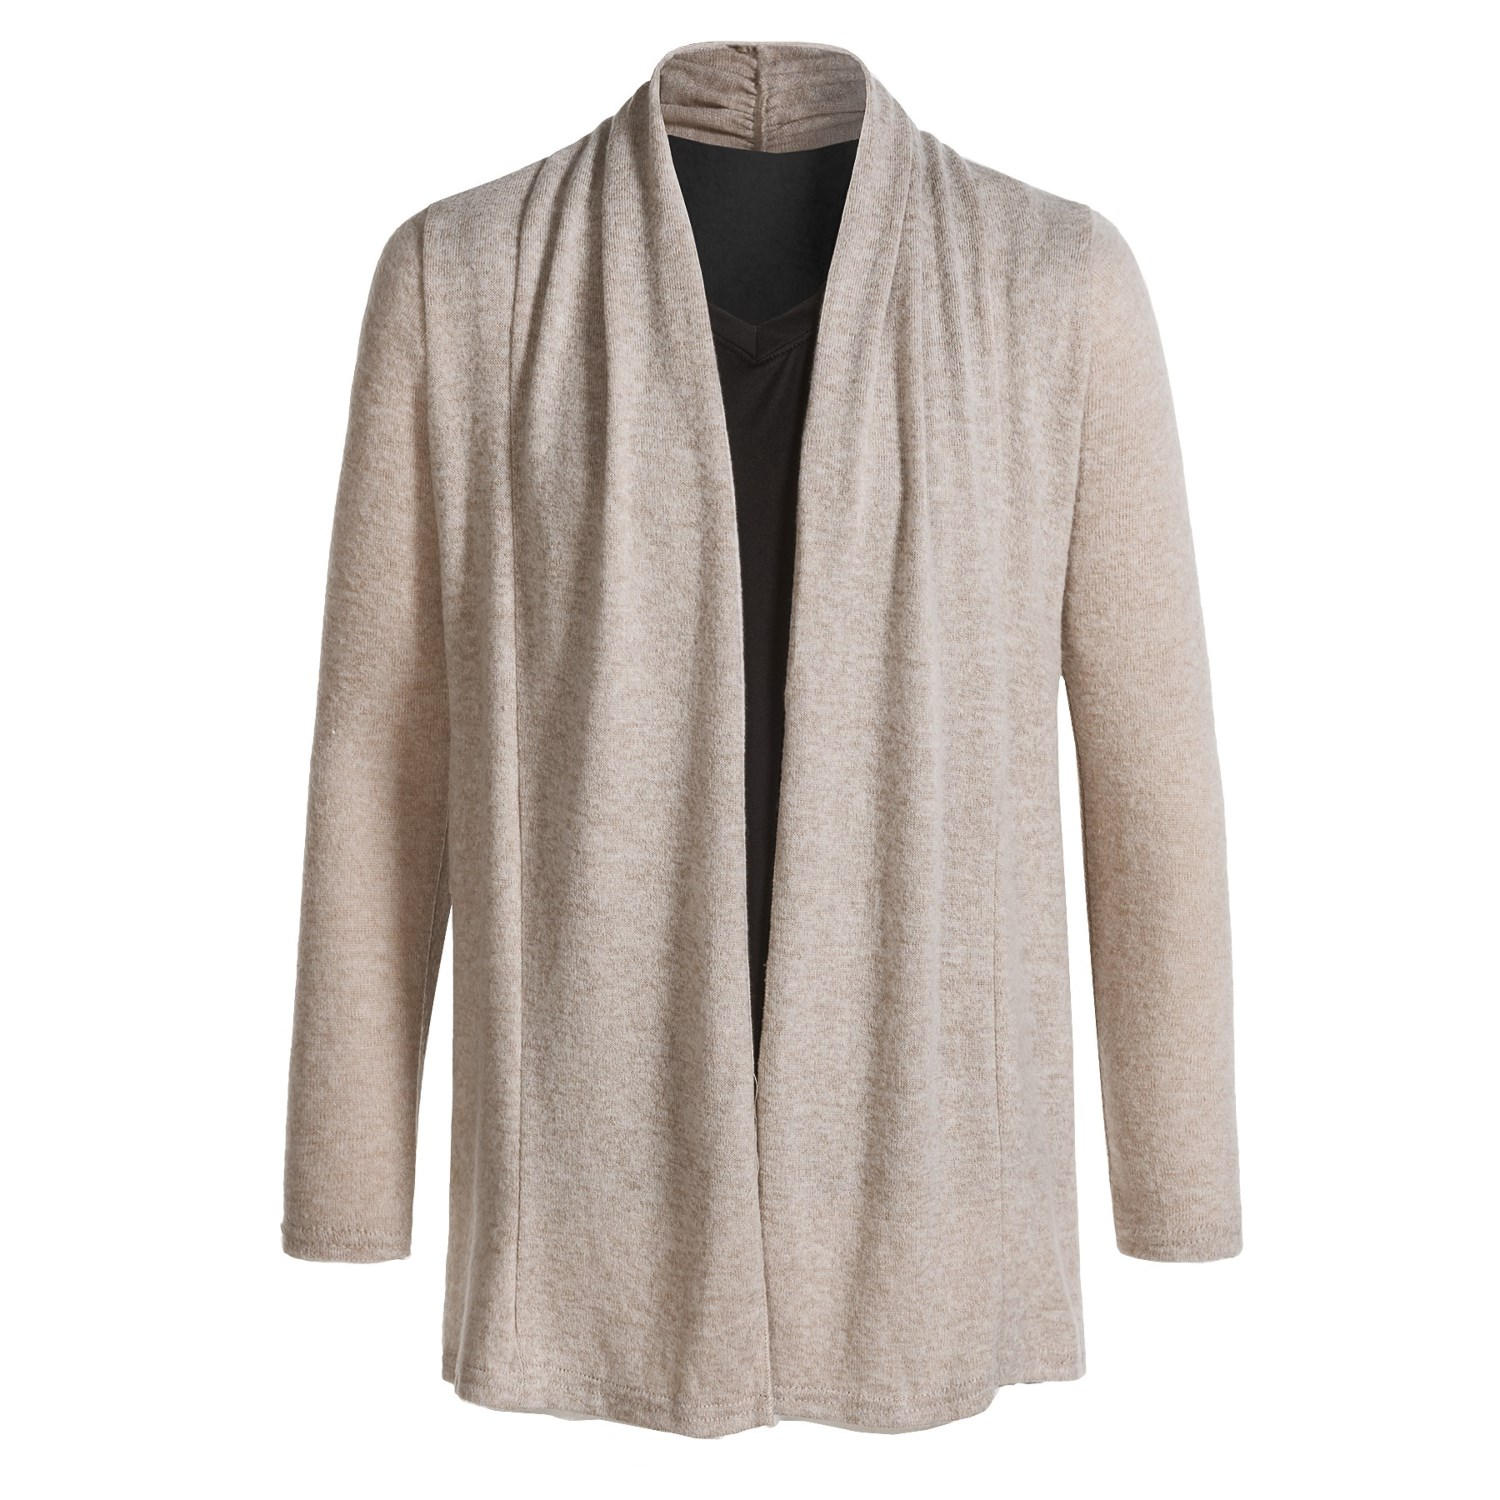 Poof Open Cardigan Sweater (For Girls) - Save 27%